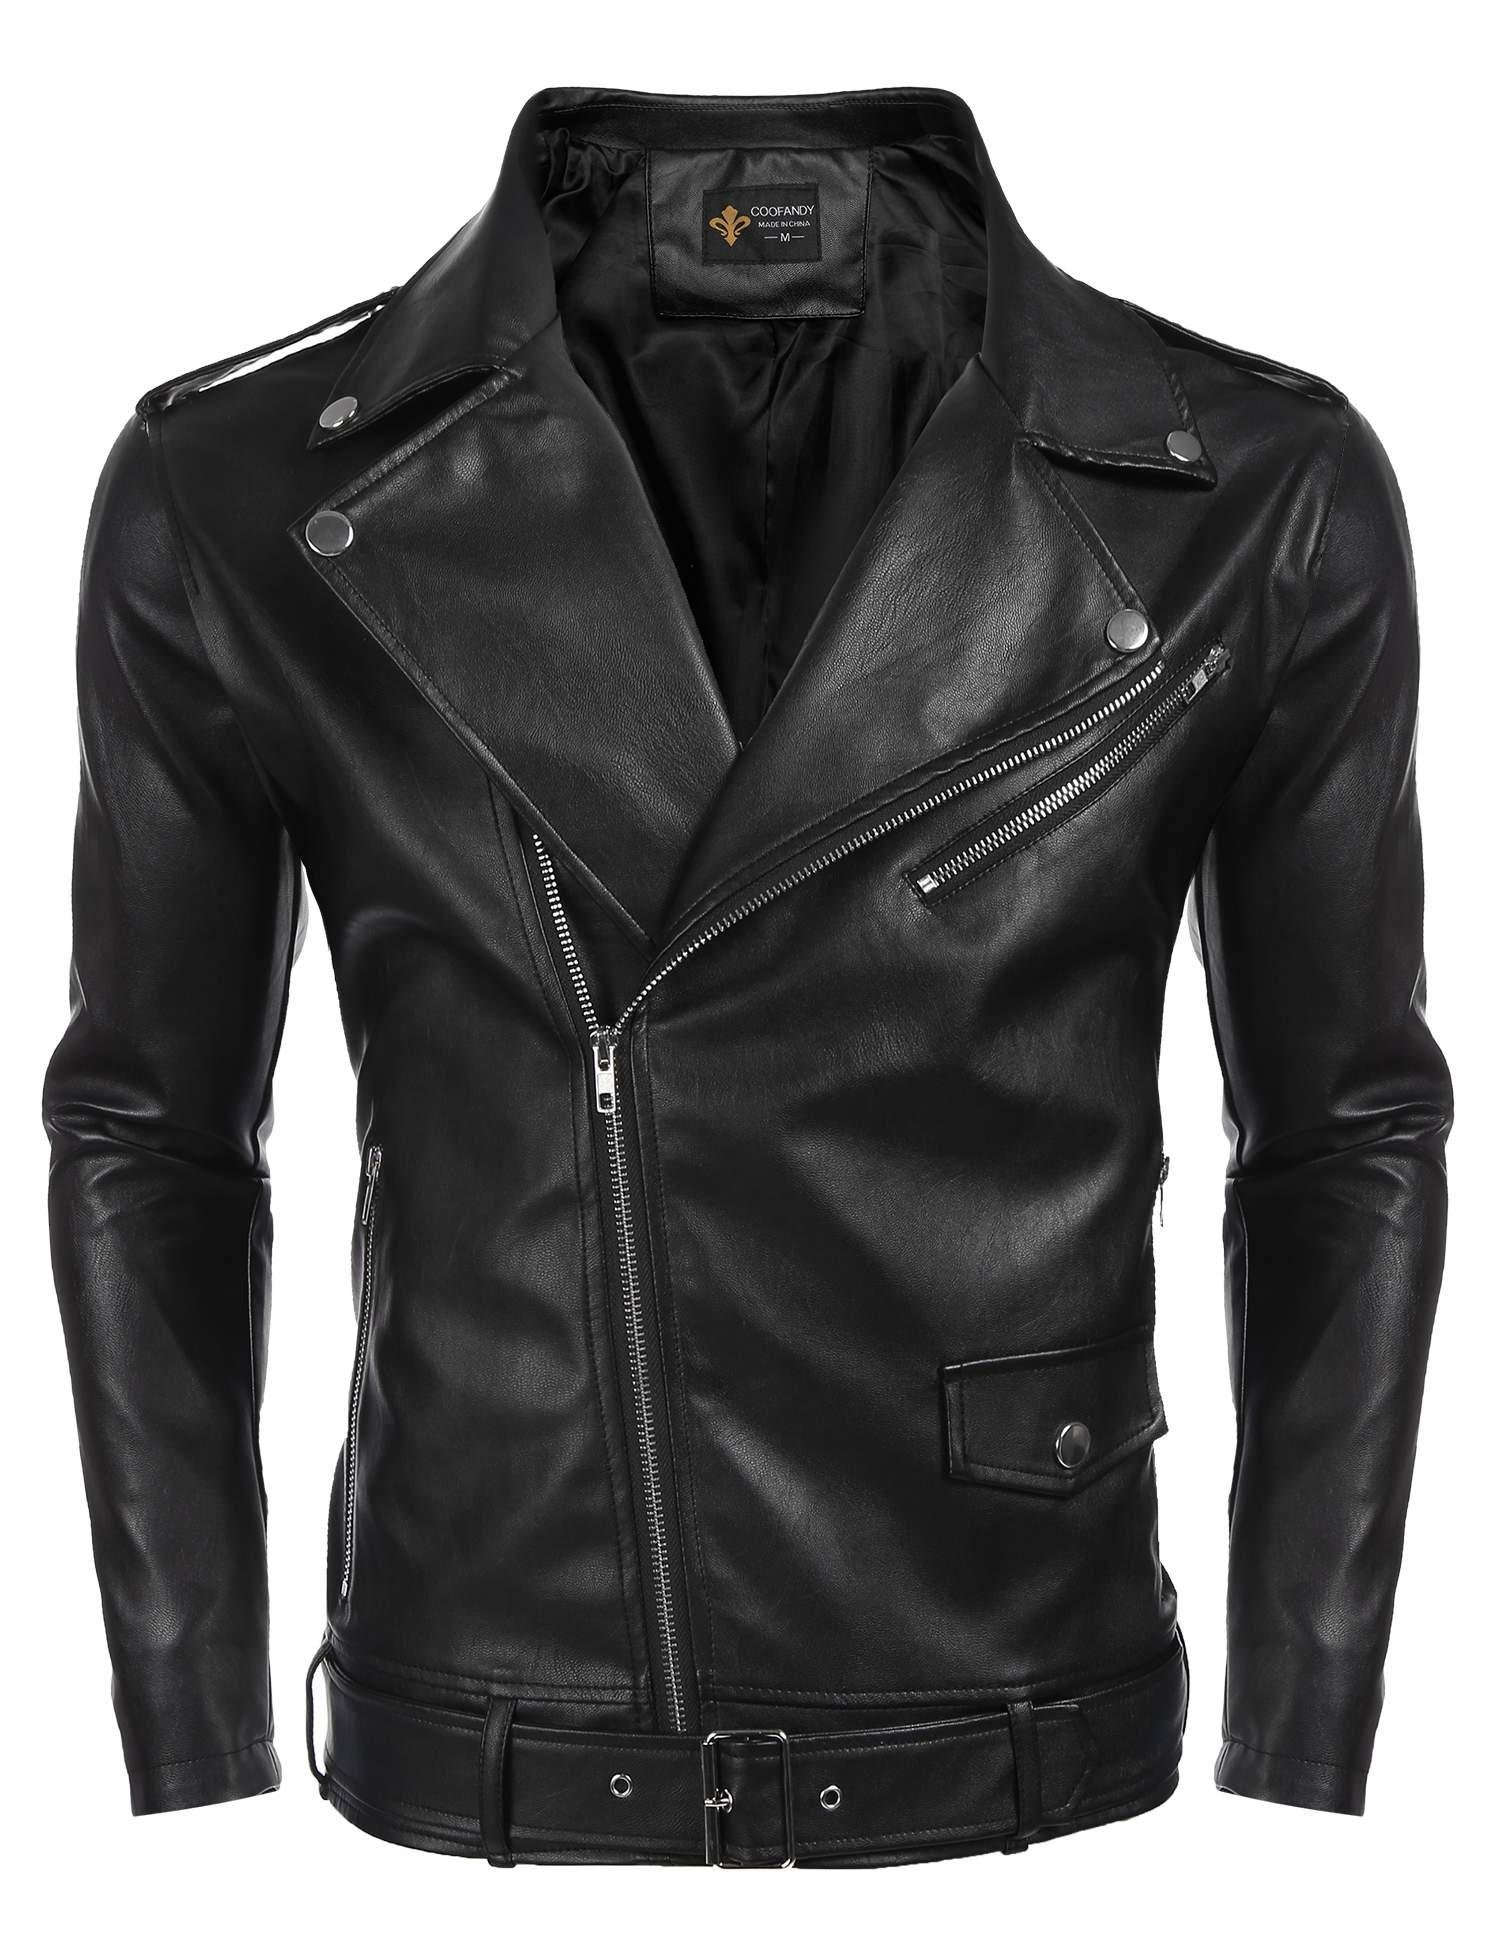 COOFANDY Men's Belt Design Leather Motorcycle Jacket Zipper Biker Jacket Coat,Black,XX-Large by COOFANDY